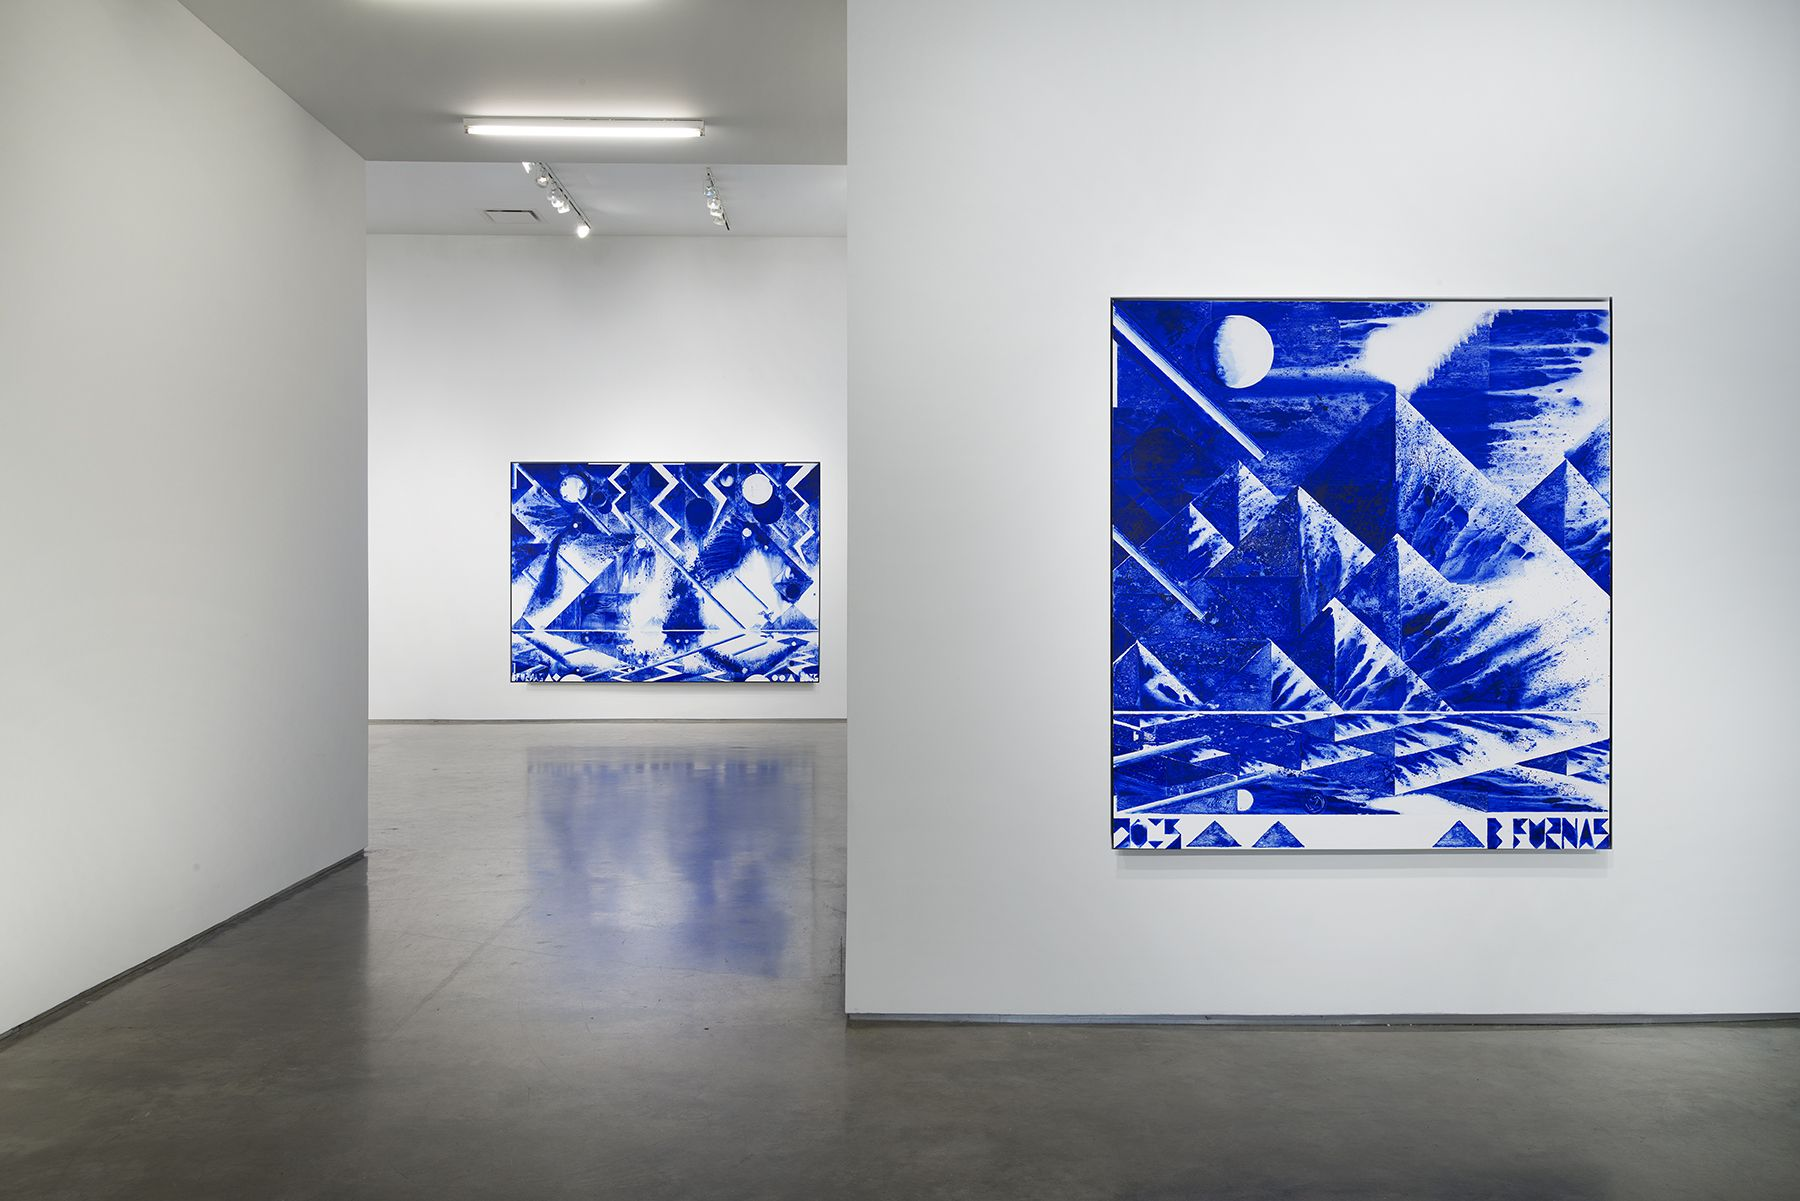 First Morning (Installation View), Marianne Boesky Gallery, 2015